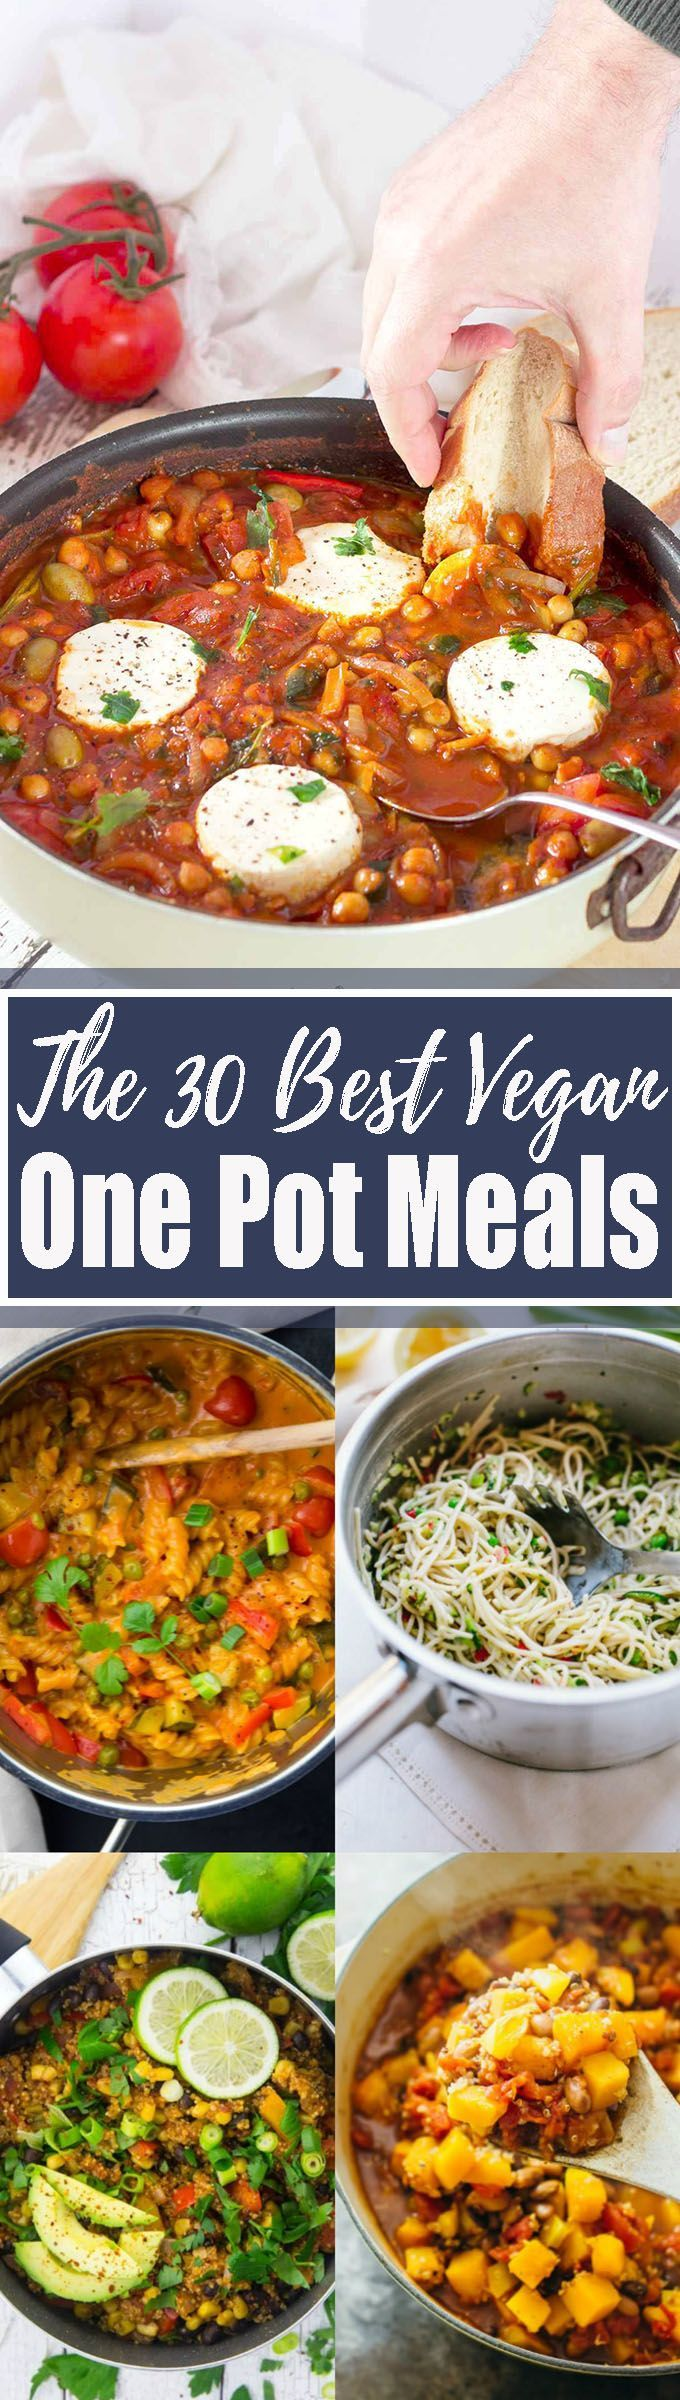 These 30 easy vegan one pot meals are perfect for busy days! All recipes are super easy, healthy, and so delicious! Vegetarian recipes definitely don't have to be complicated! Find more vegan recipes at veganheaven.org <3